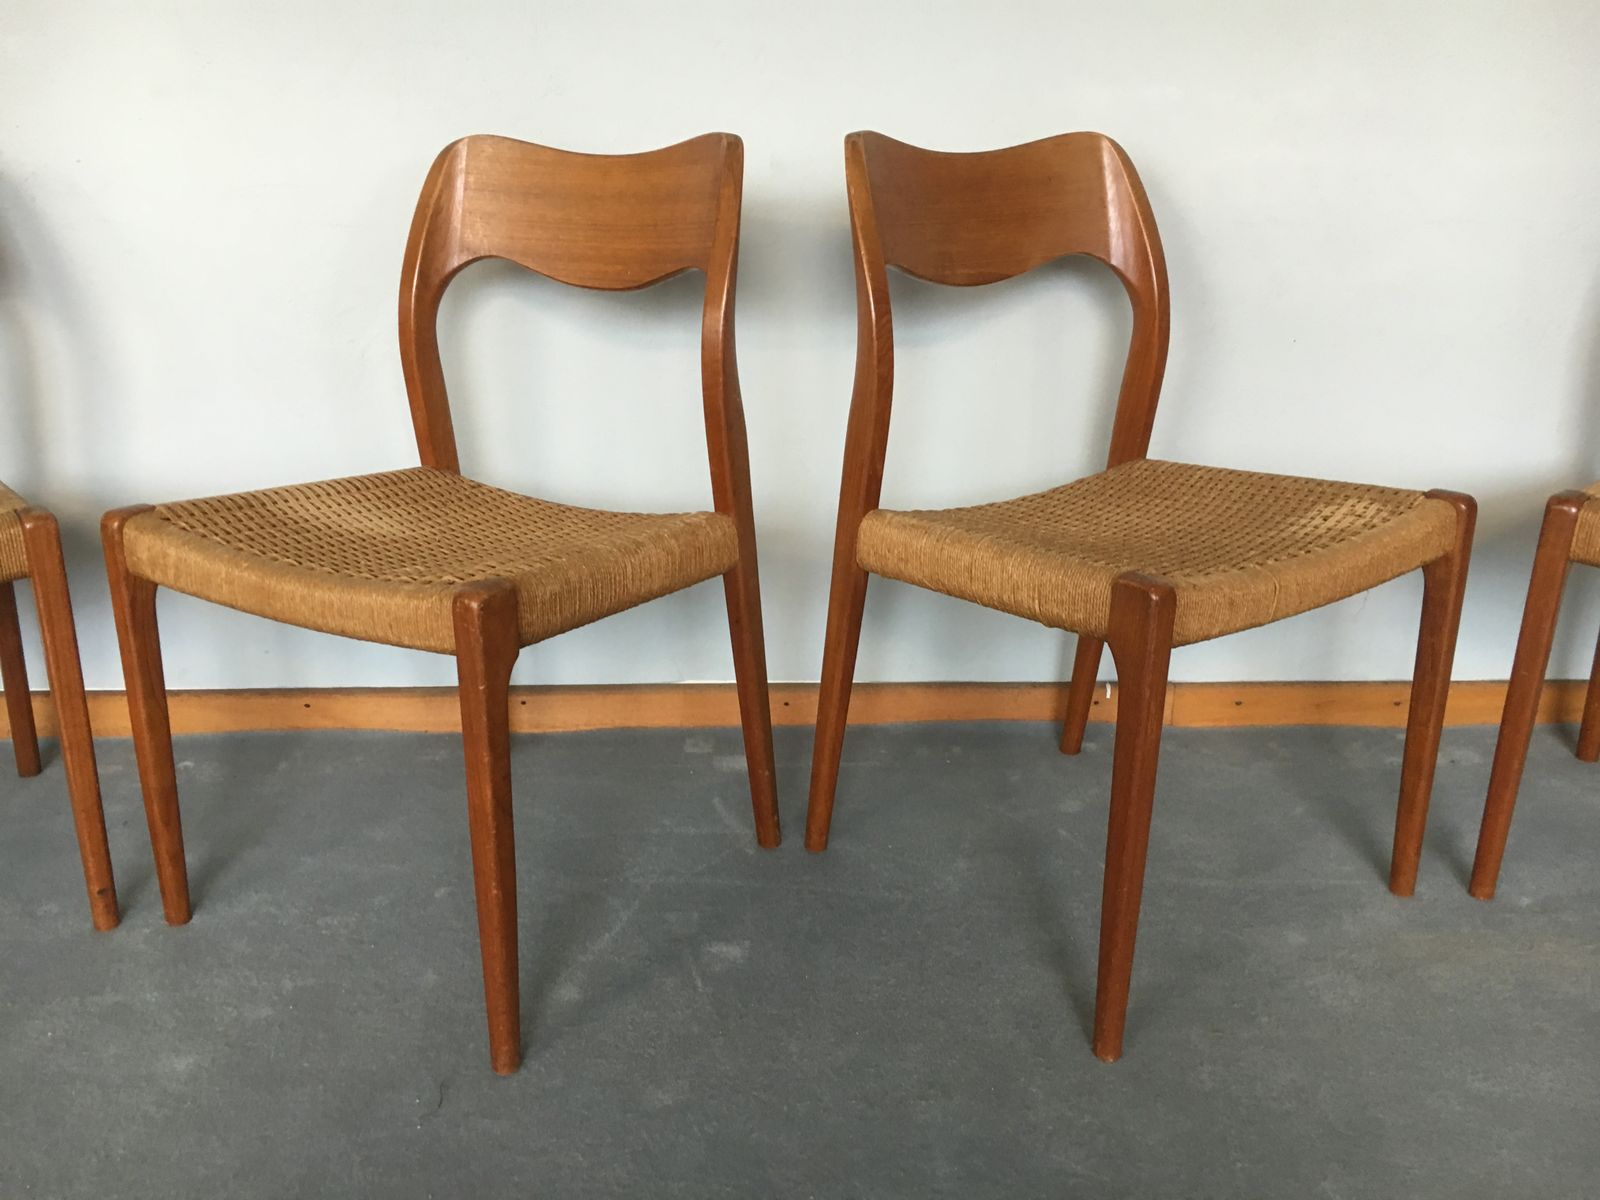 Perfect Model 71 Dining Chairs By Niels O. Møller For J.L. Møller, 1960s, Set Of 4  For Sale At Pamono